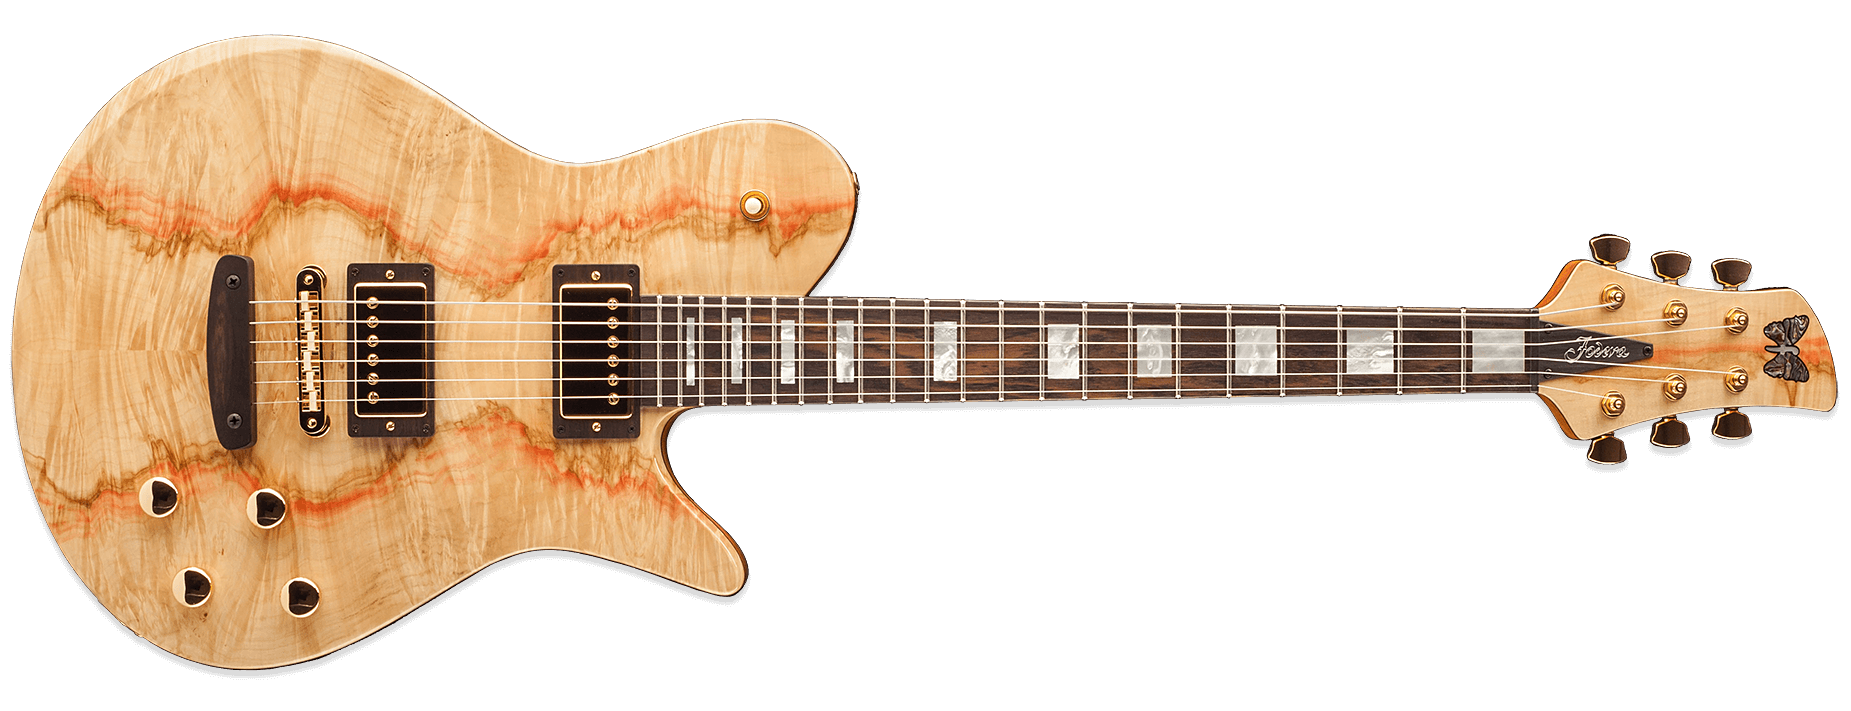 Fodera Imperial Deluxe Natural